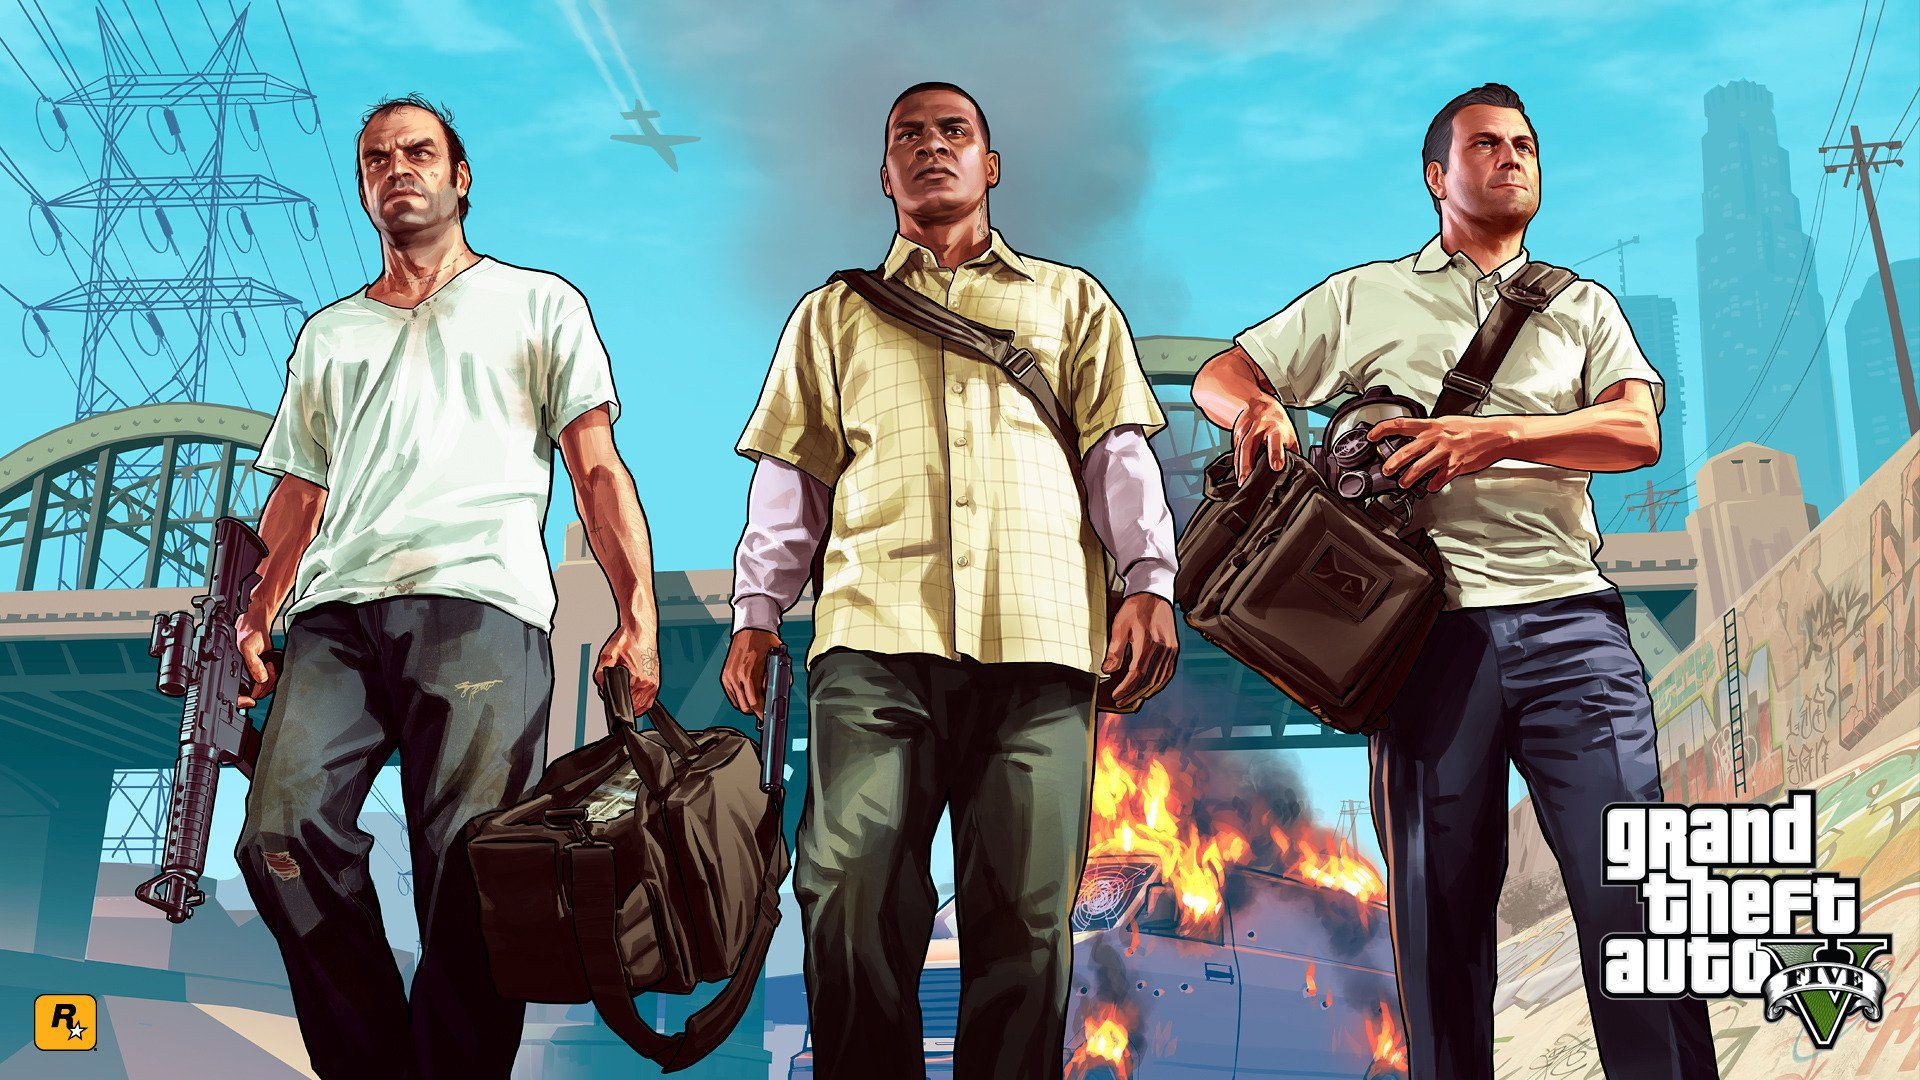 wallpapers hd de gta 5 pas lince taringa android grand rh pinterest com